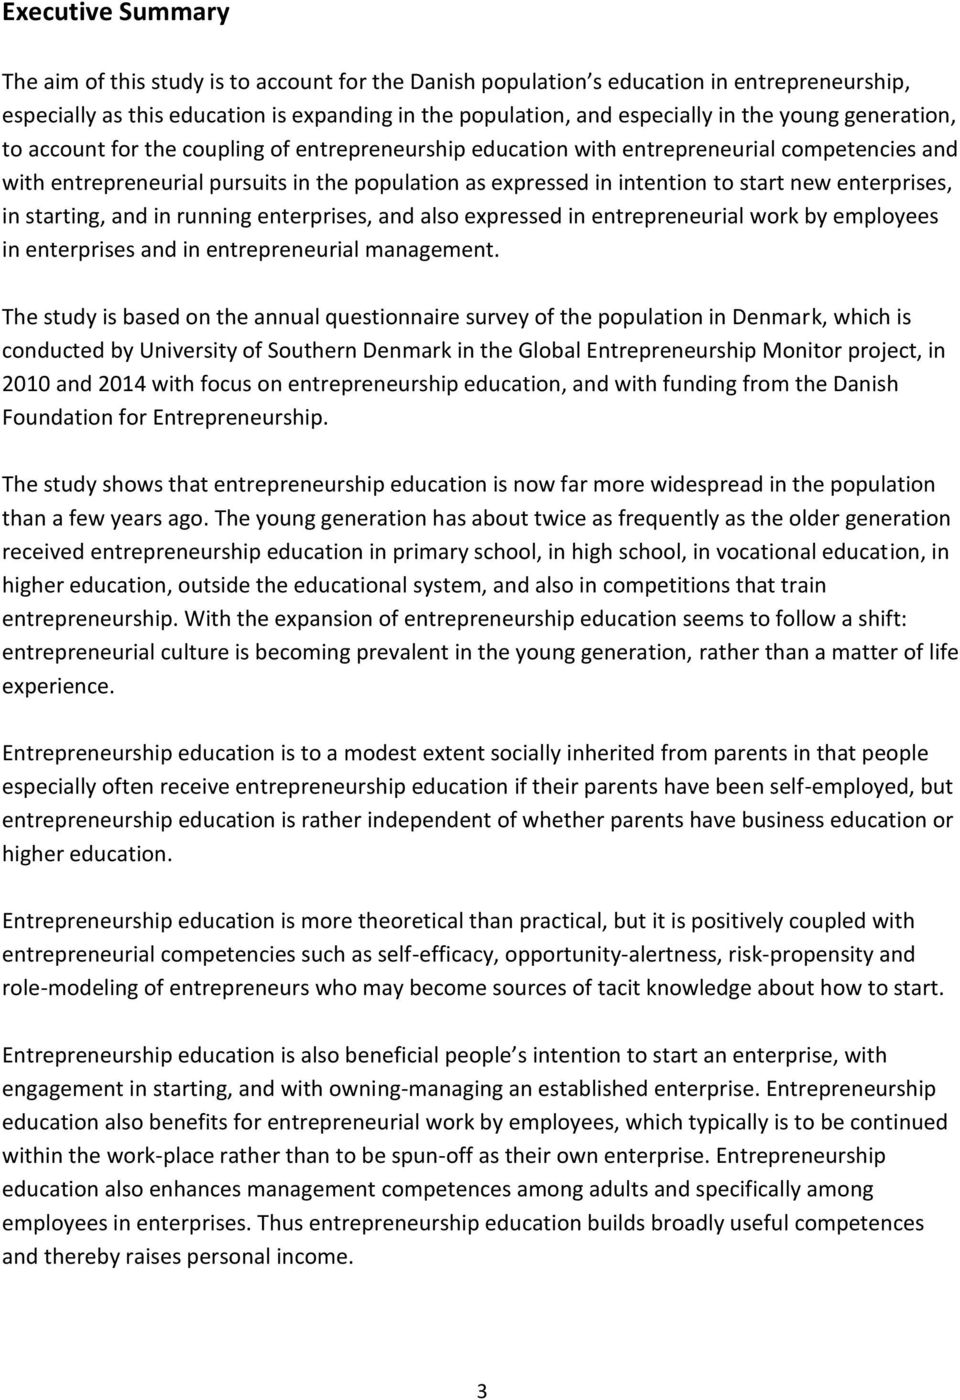 new enterprises, in starting, and in running enterprises, and also expressed in entrepreneurial work by employees in enterprises and in entrepreneurial management.